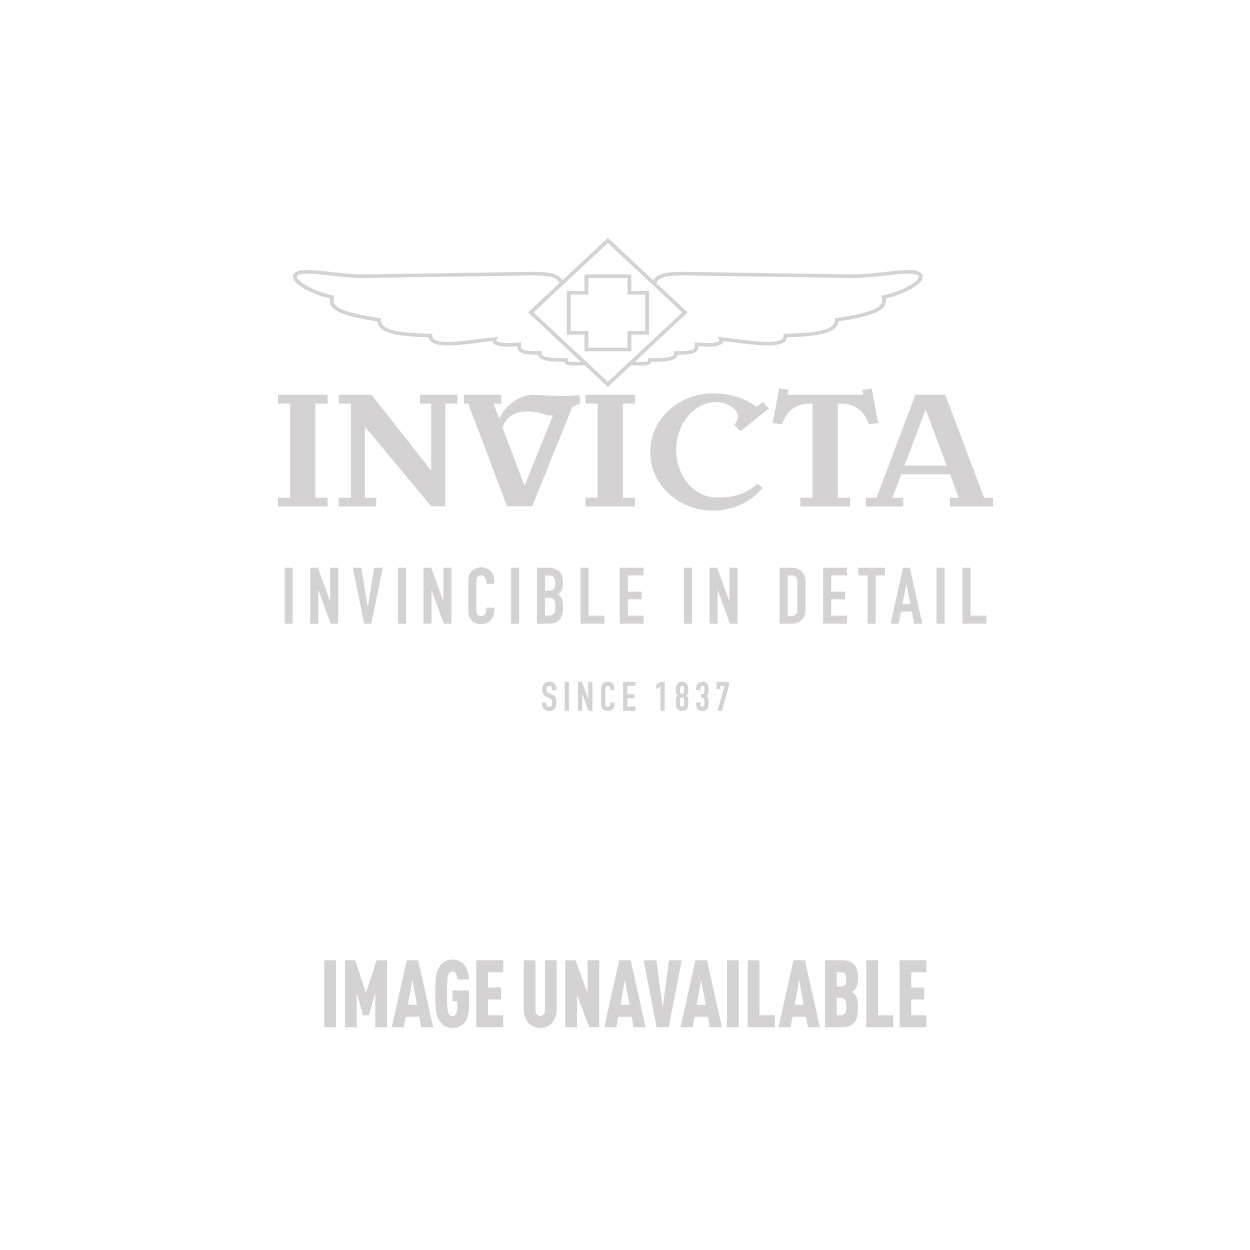 Invicta I-Force Swiss Movement Quartz Watch - Gunmetal case with Brown tone Leather band - Model 18513